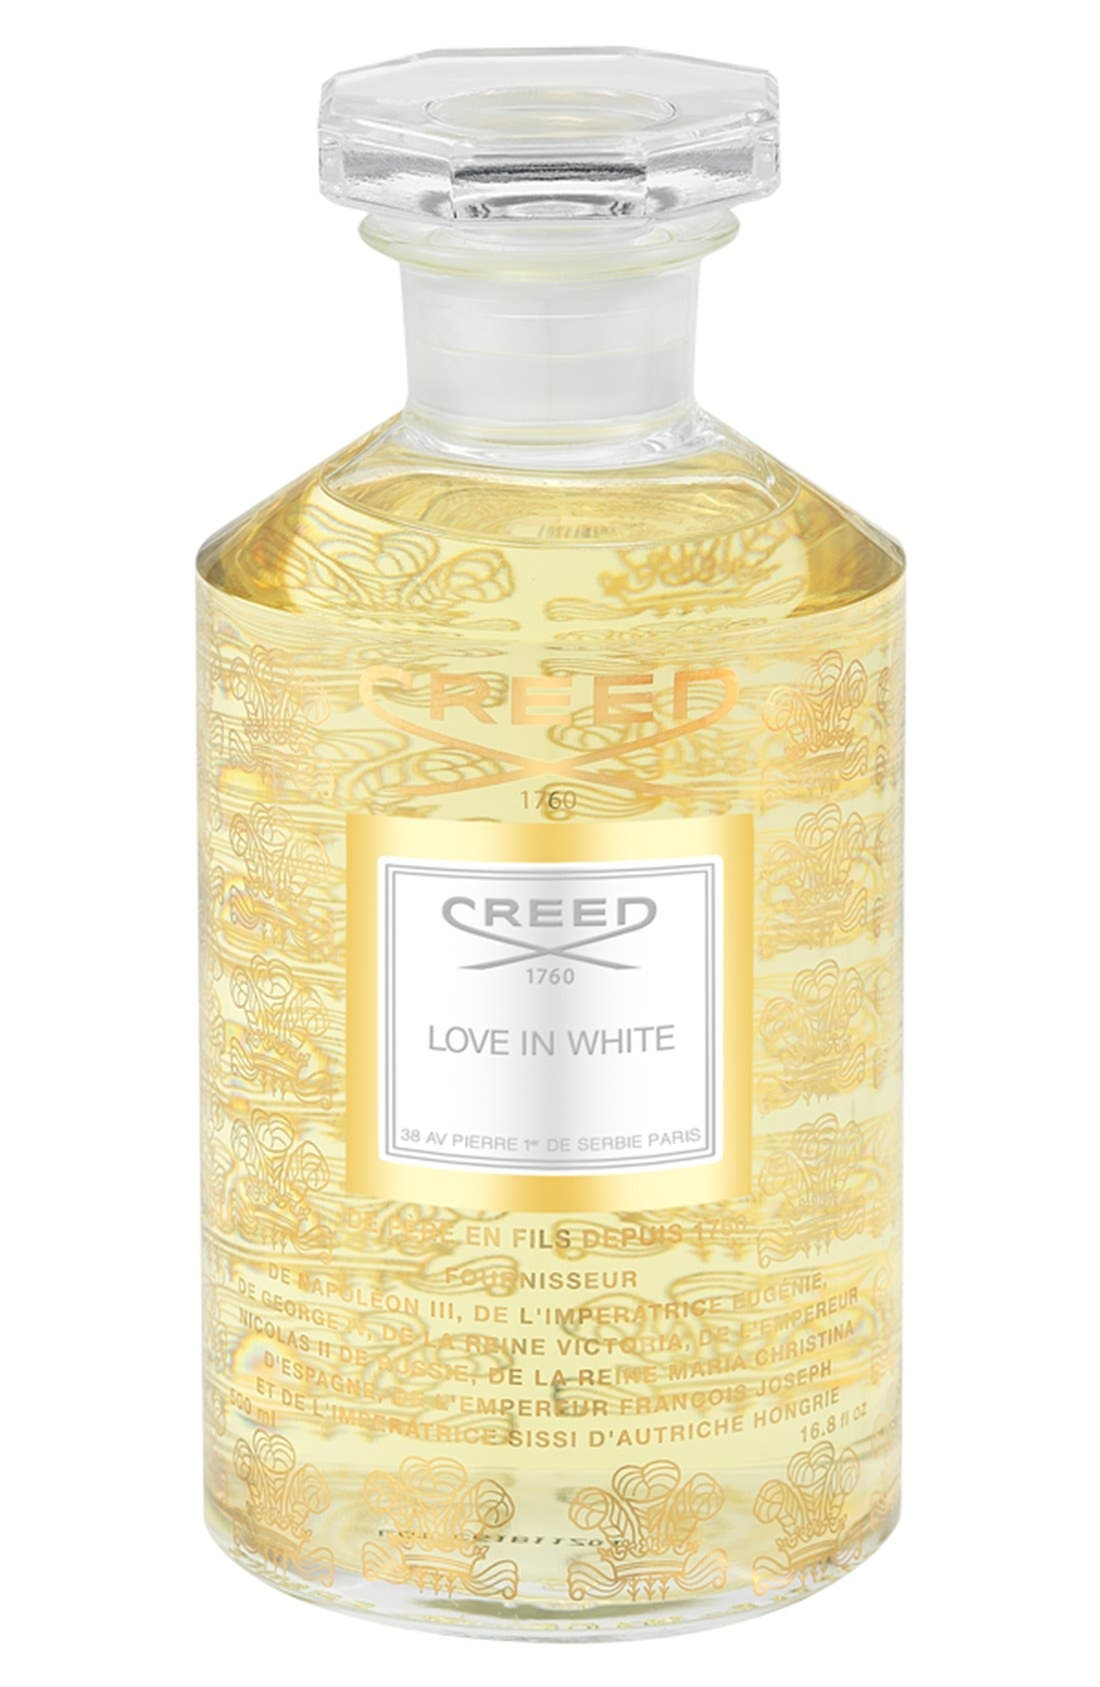 Creed Perfume Nordstrom